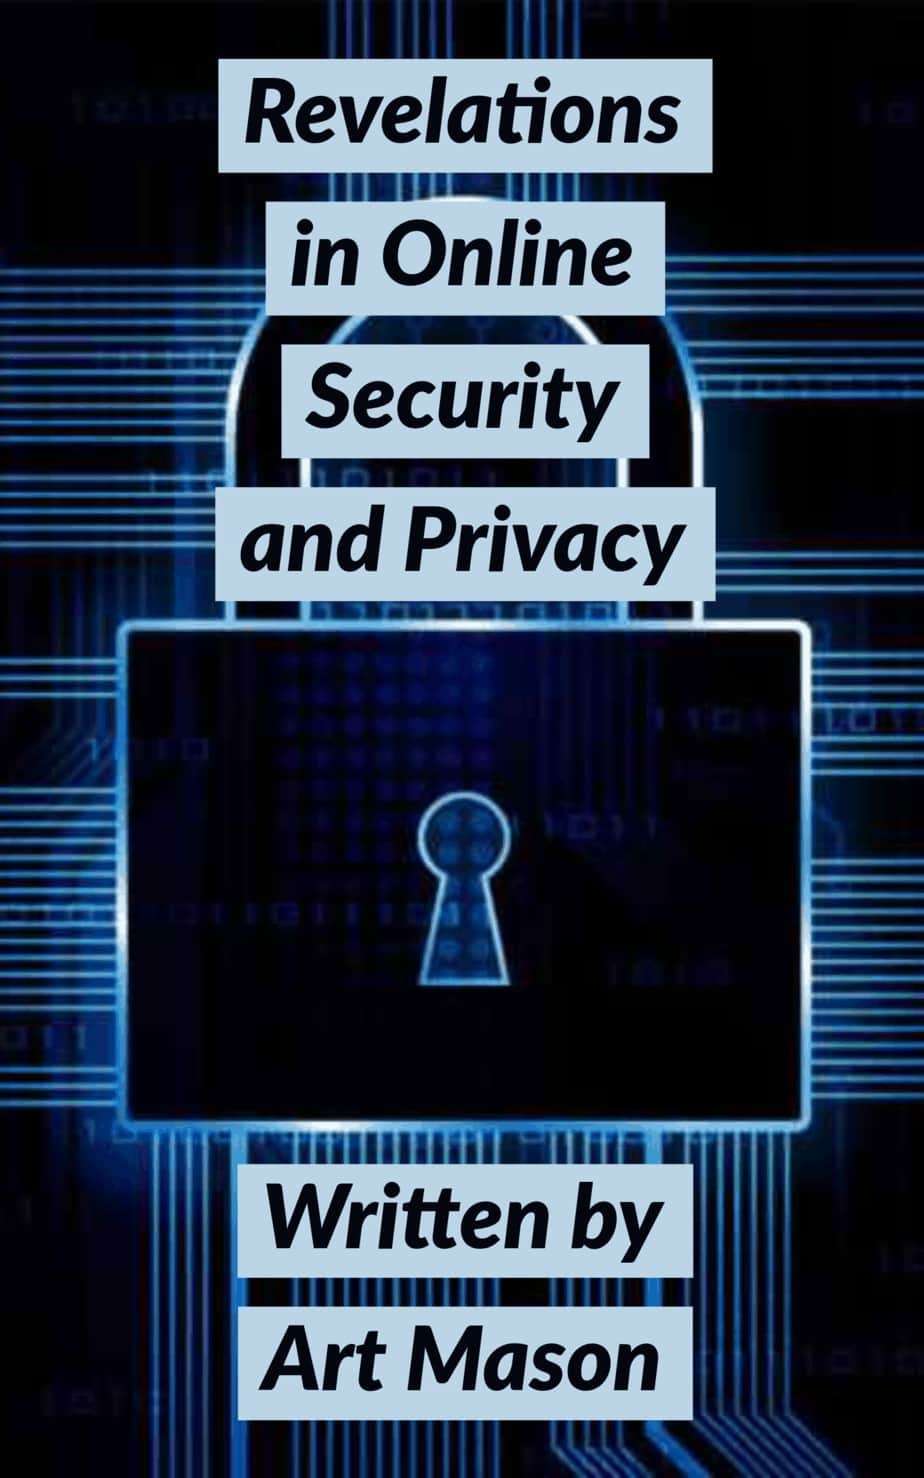 * Revelations in Online Security and Privacy